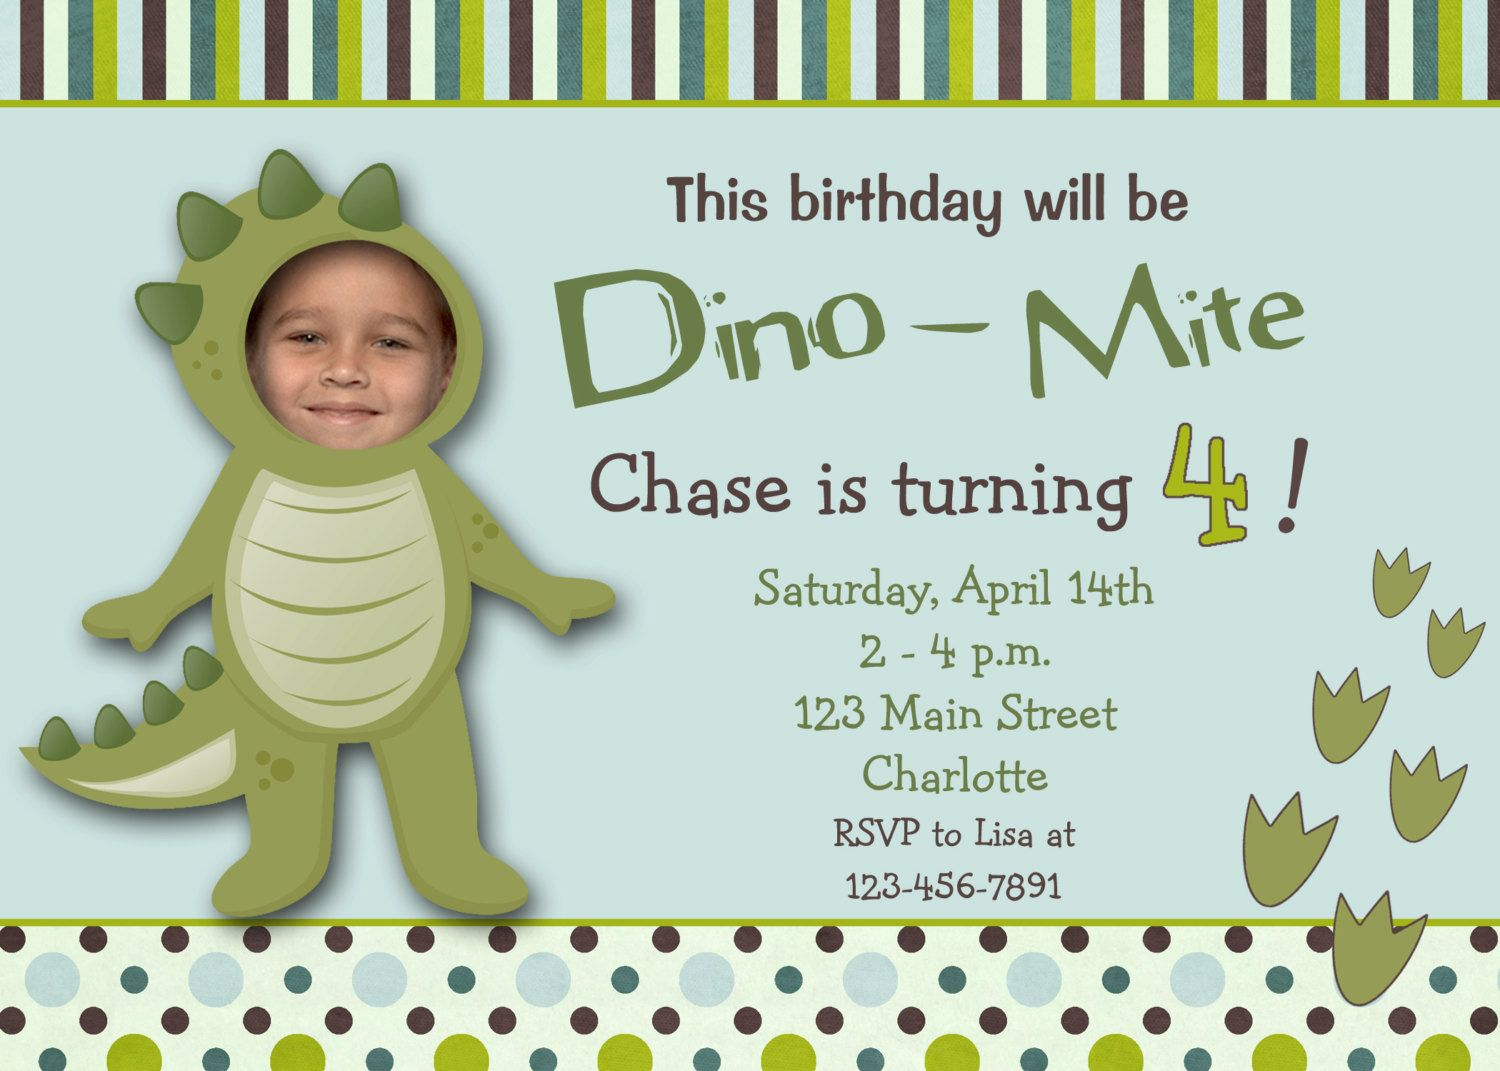 dinosaur birthday invitations with photo ; 8ccf859ed79676b05cb9639ab6df5b62